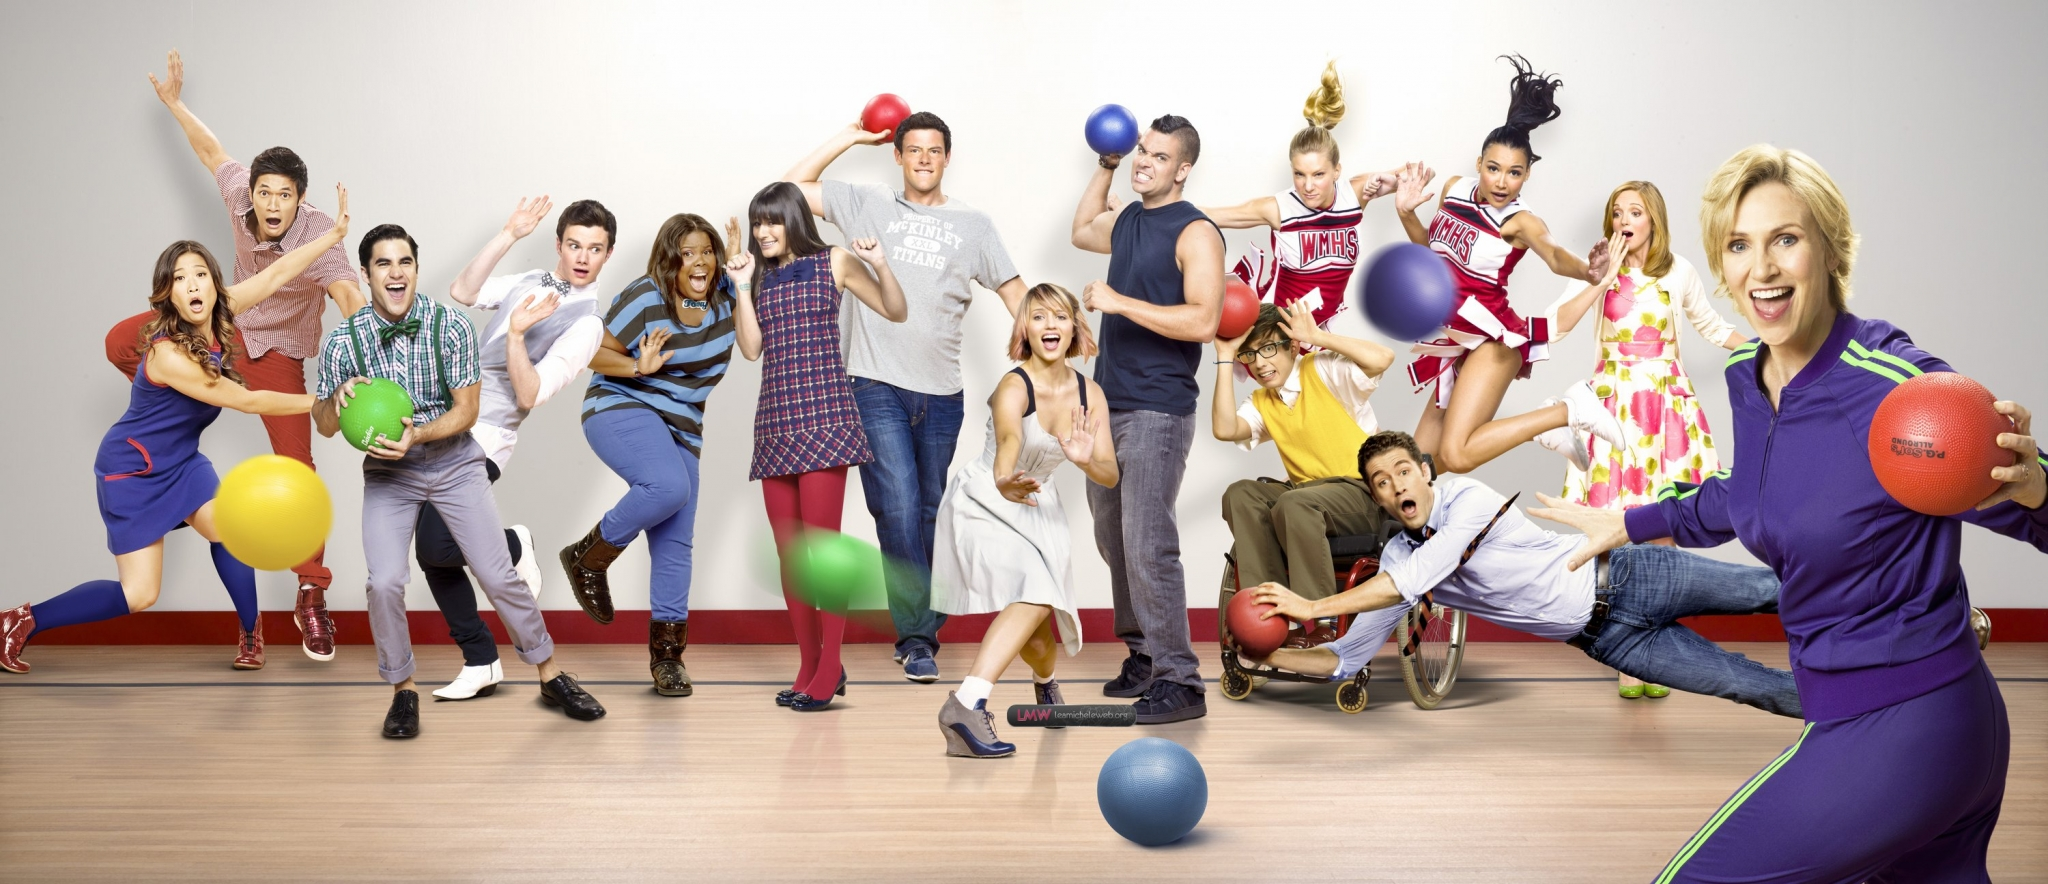 Glee - Glee Photo (28792155) - Fanpop